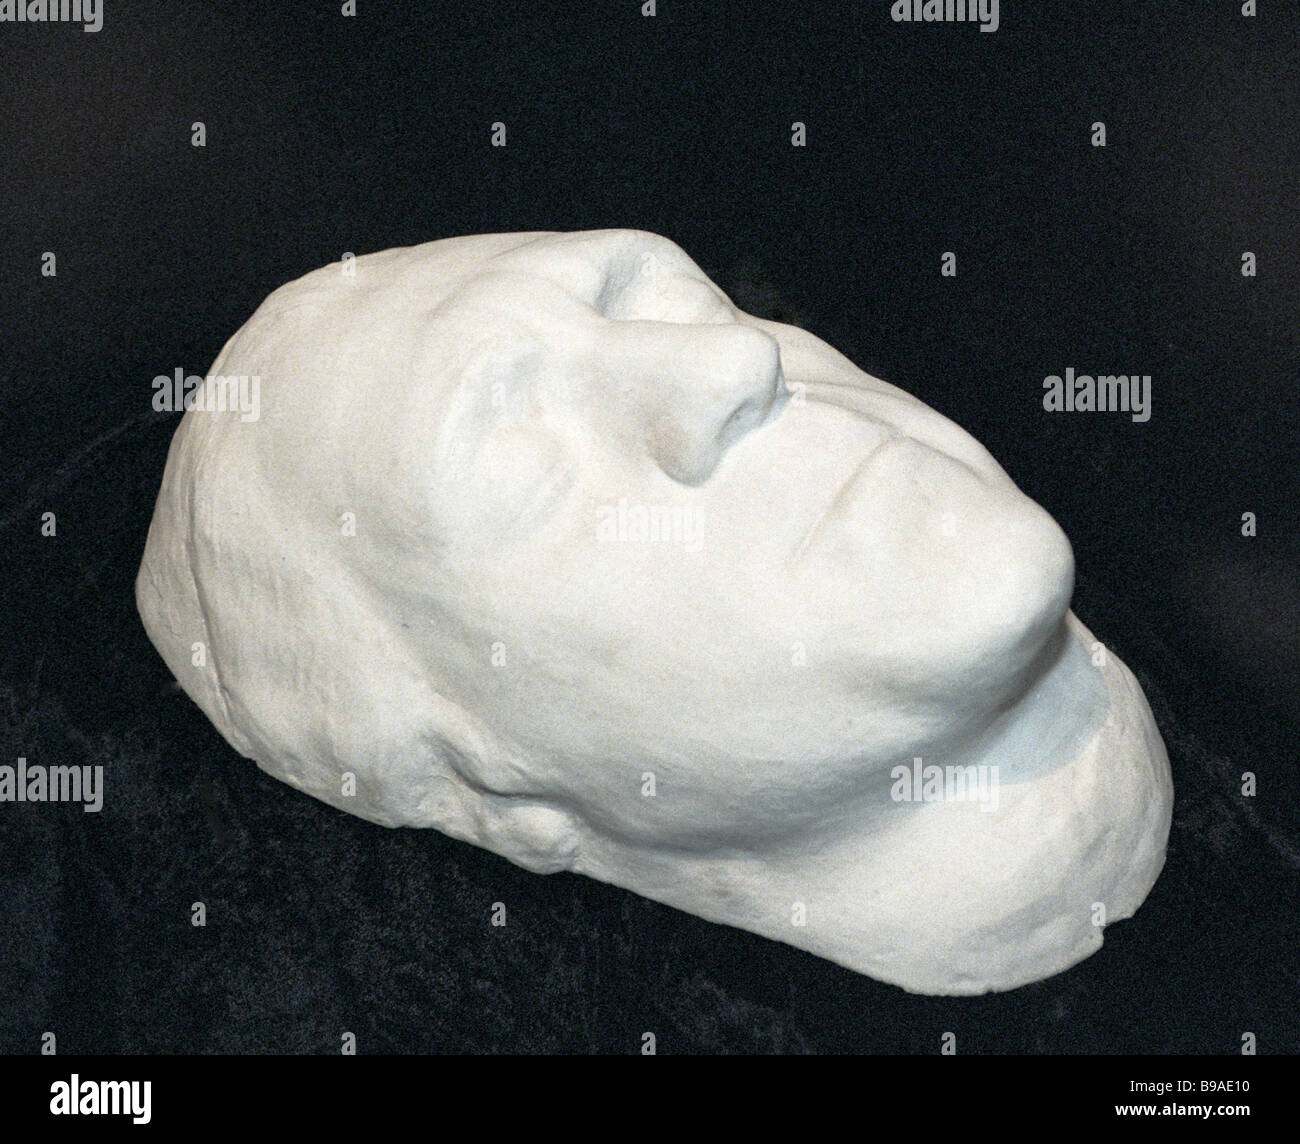 The death mask of Vysotsky was sold for 55 thousand euros. 25.11.2015 82